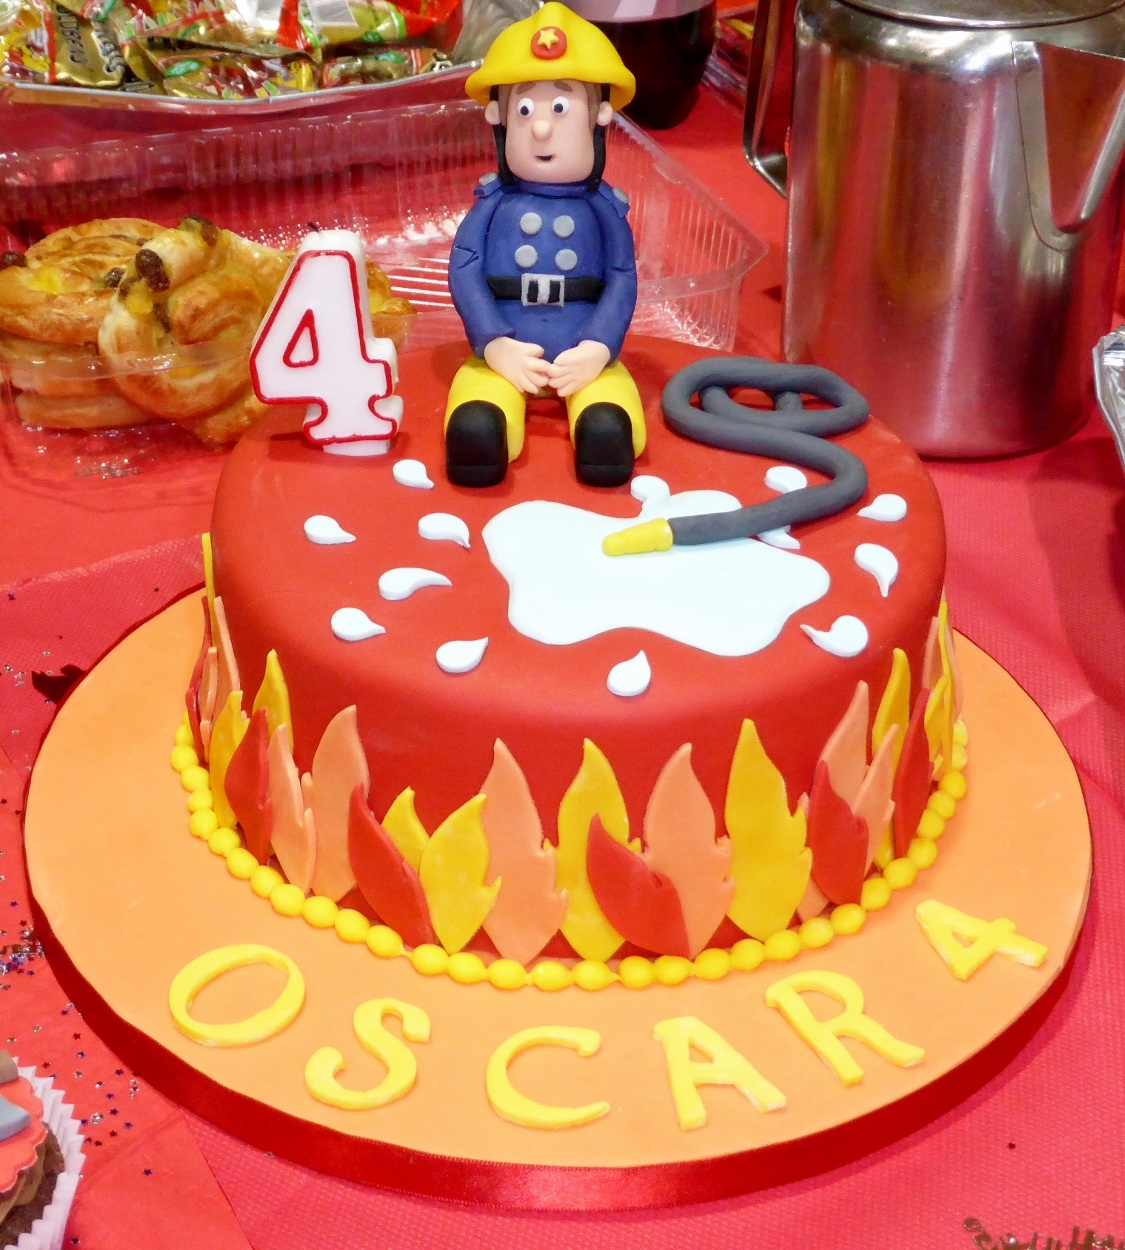 Fireman Sam Cake Decorations Tesco : Fireman Cakes   Decoration Ideas Little Birthday Cakes